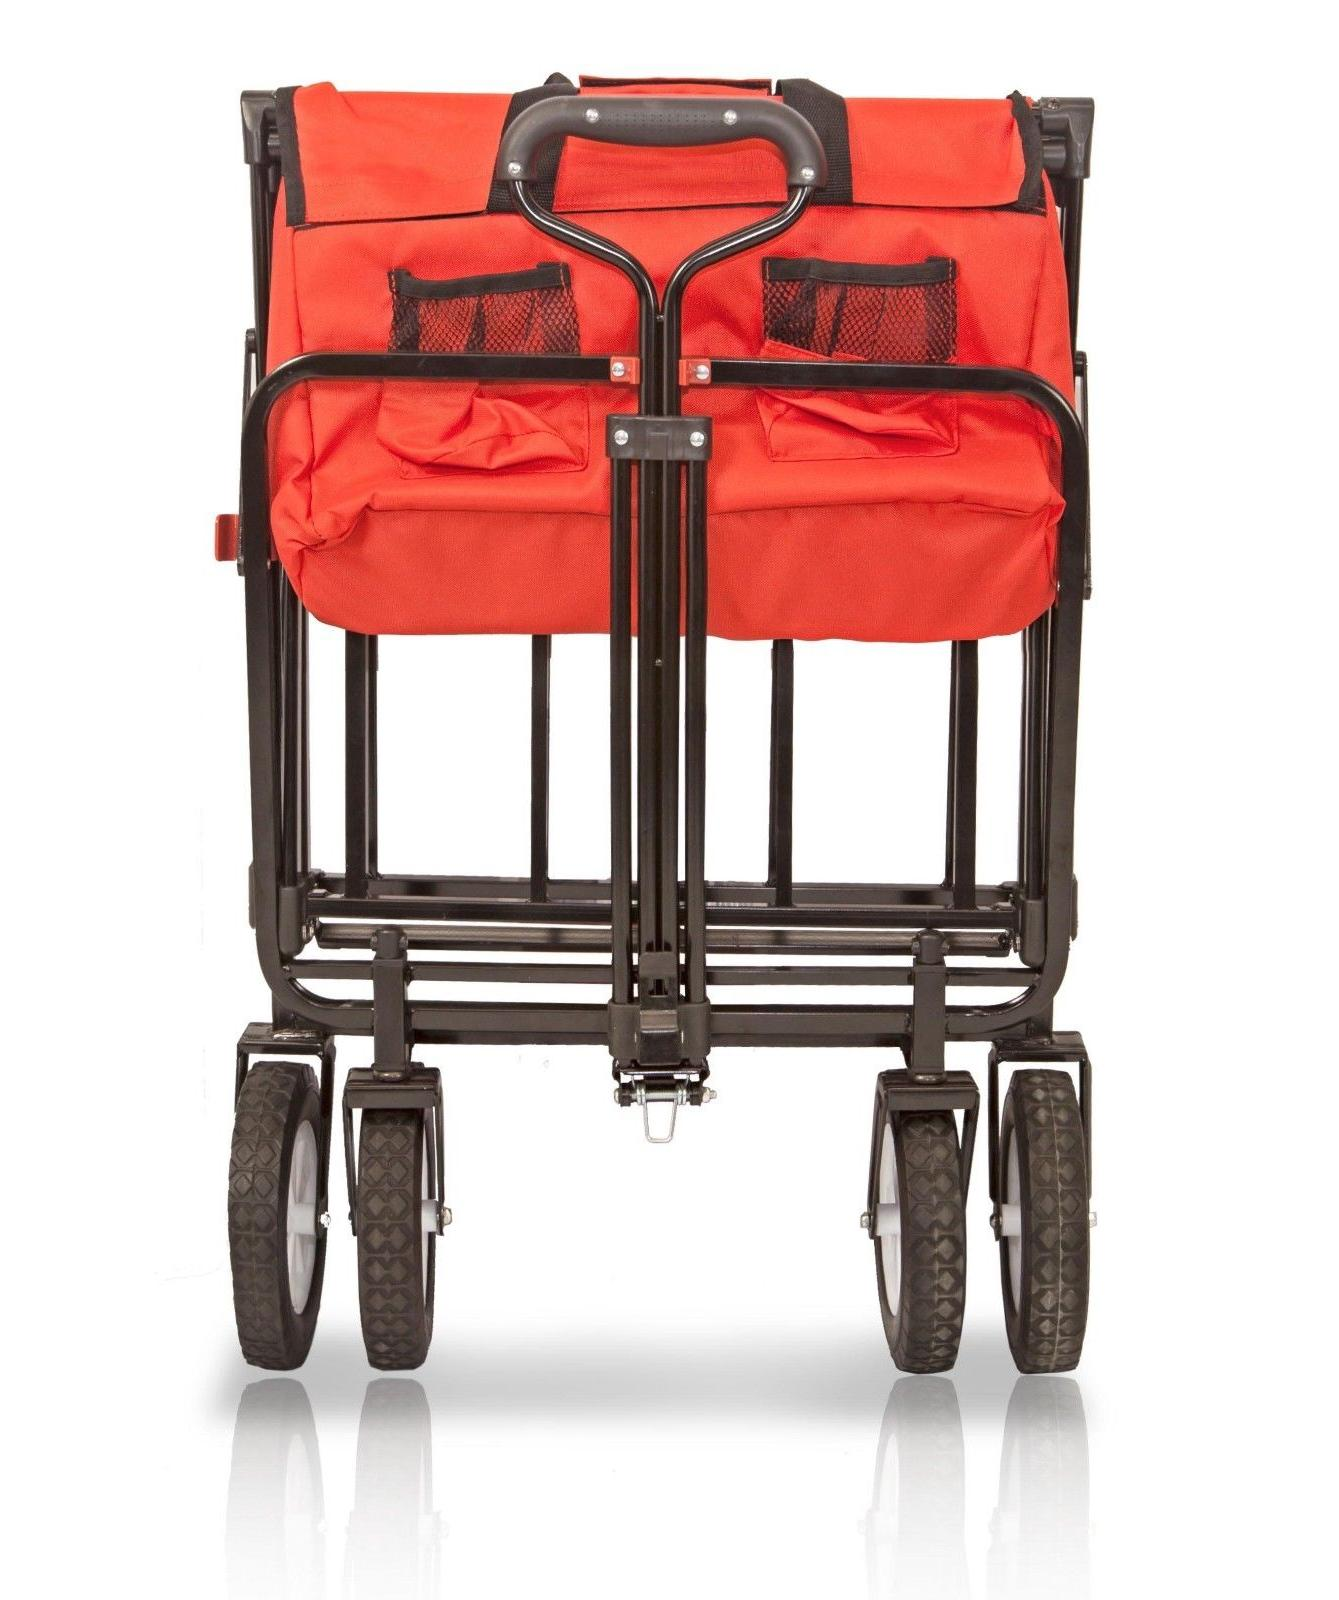 WonderFold New Folding Collapsible Utility Cart